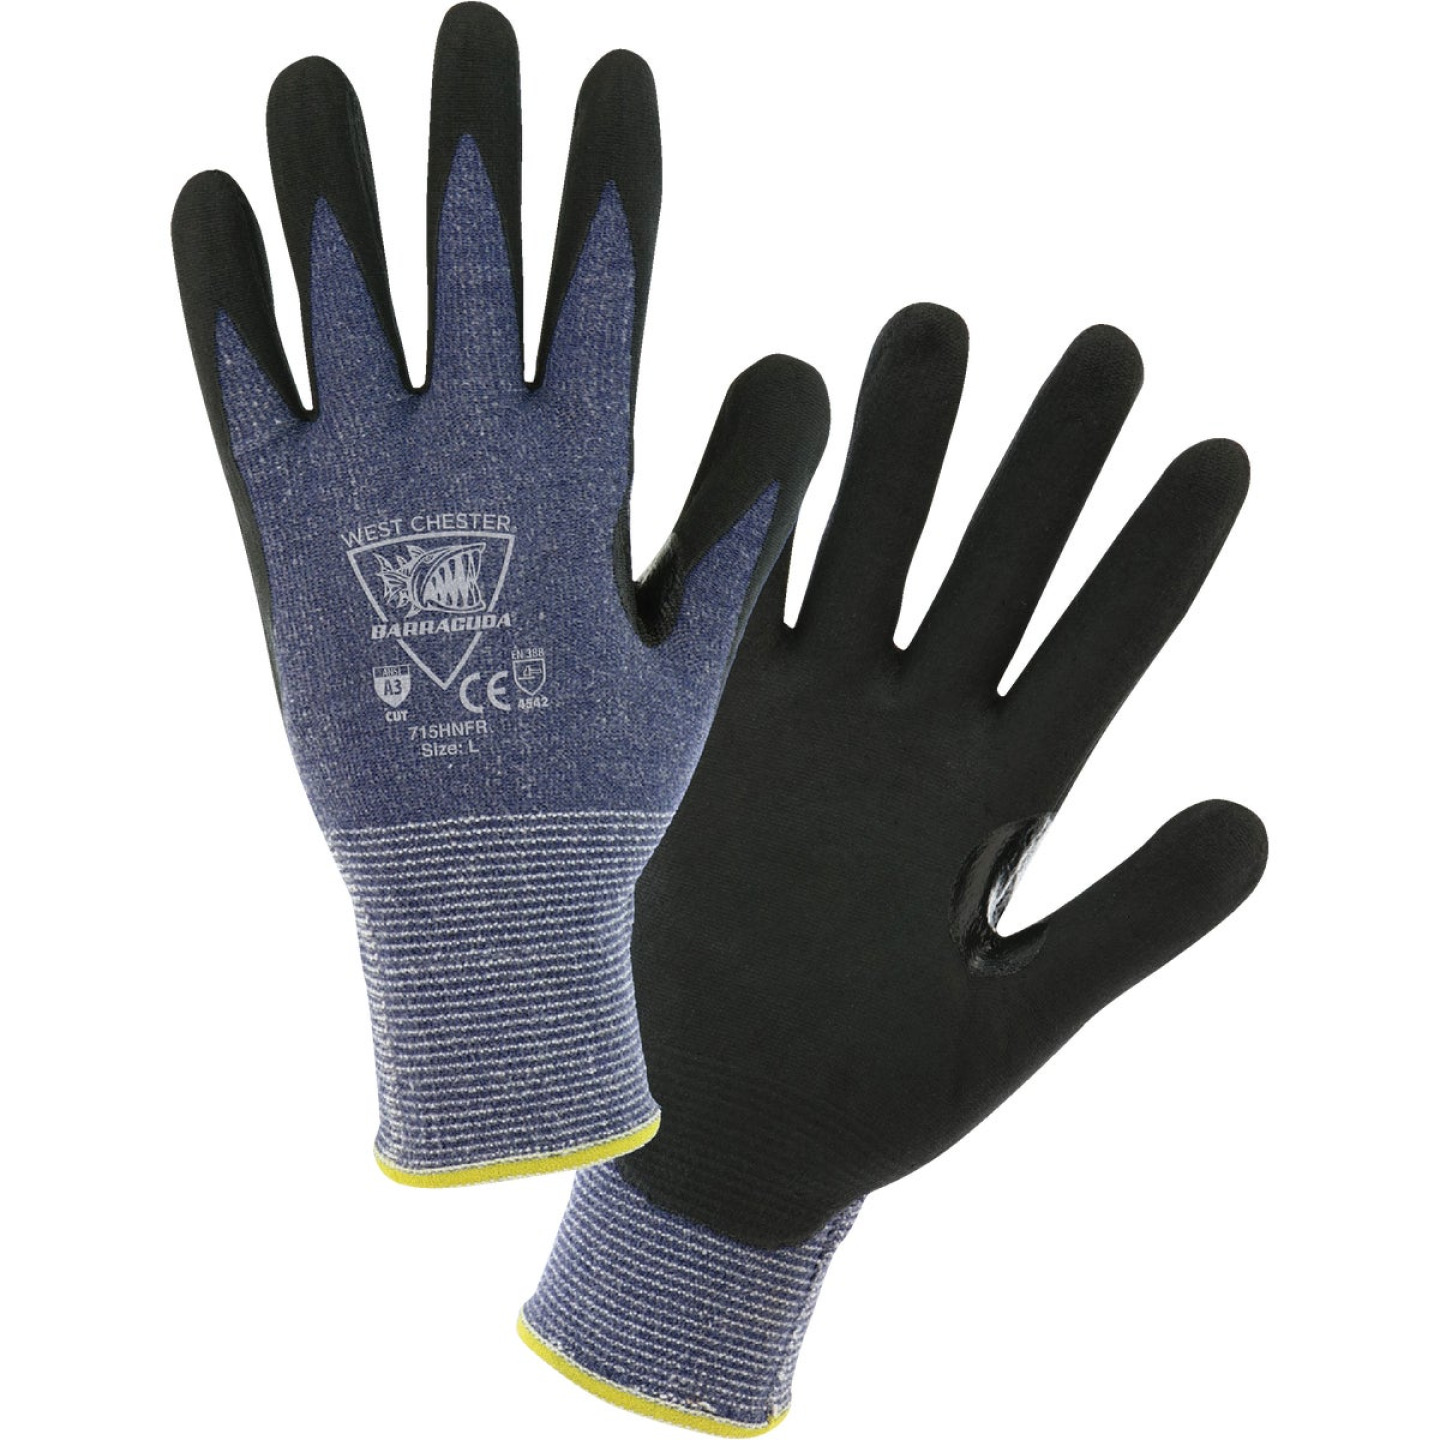 West Chester Protective Gear Barracuda Men's Medium 15-Gauge Nitrile Coated Glove Image 1